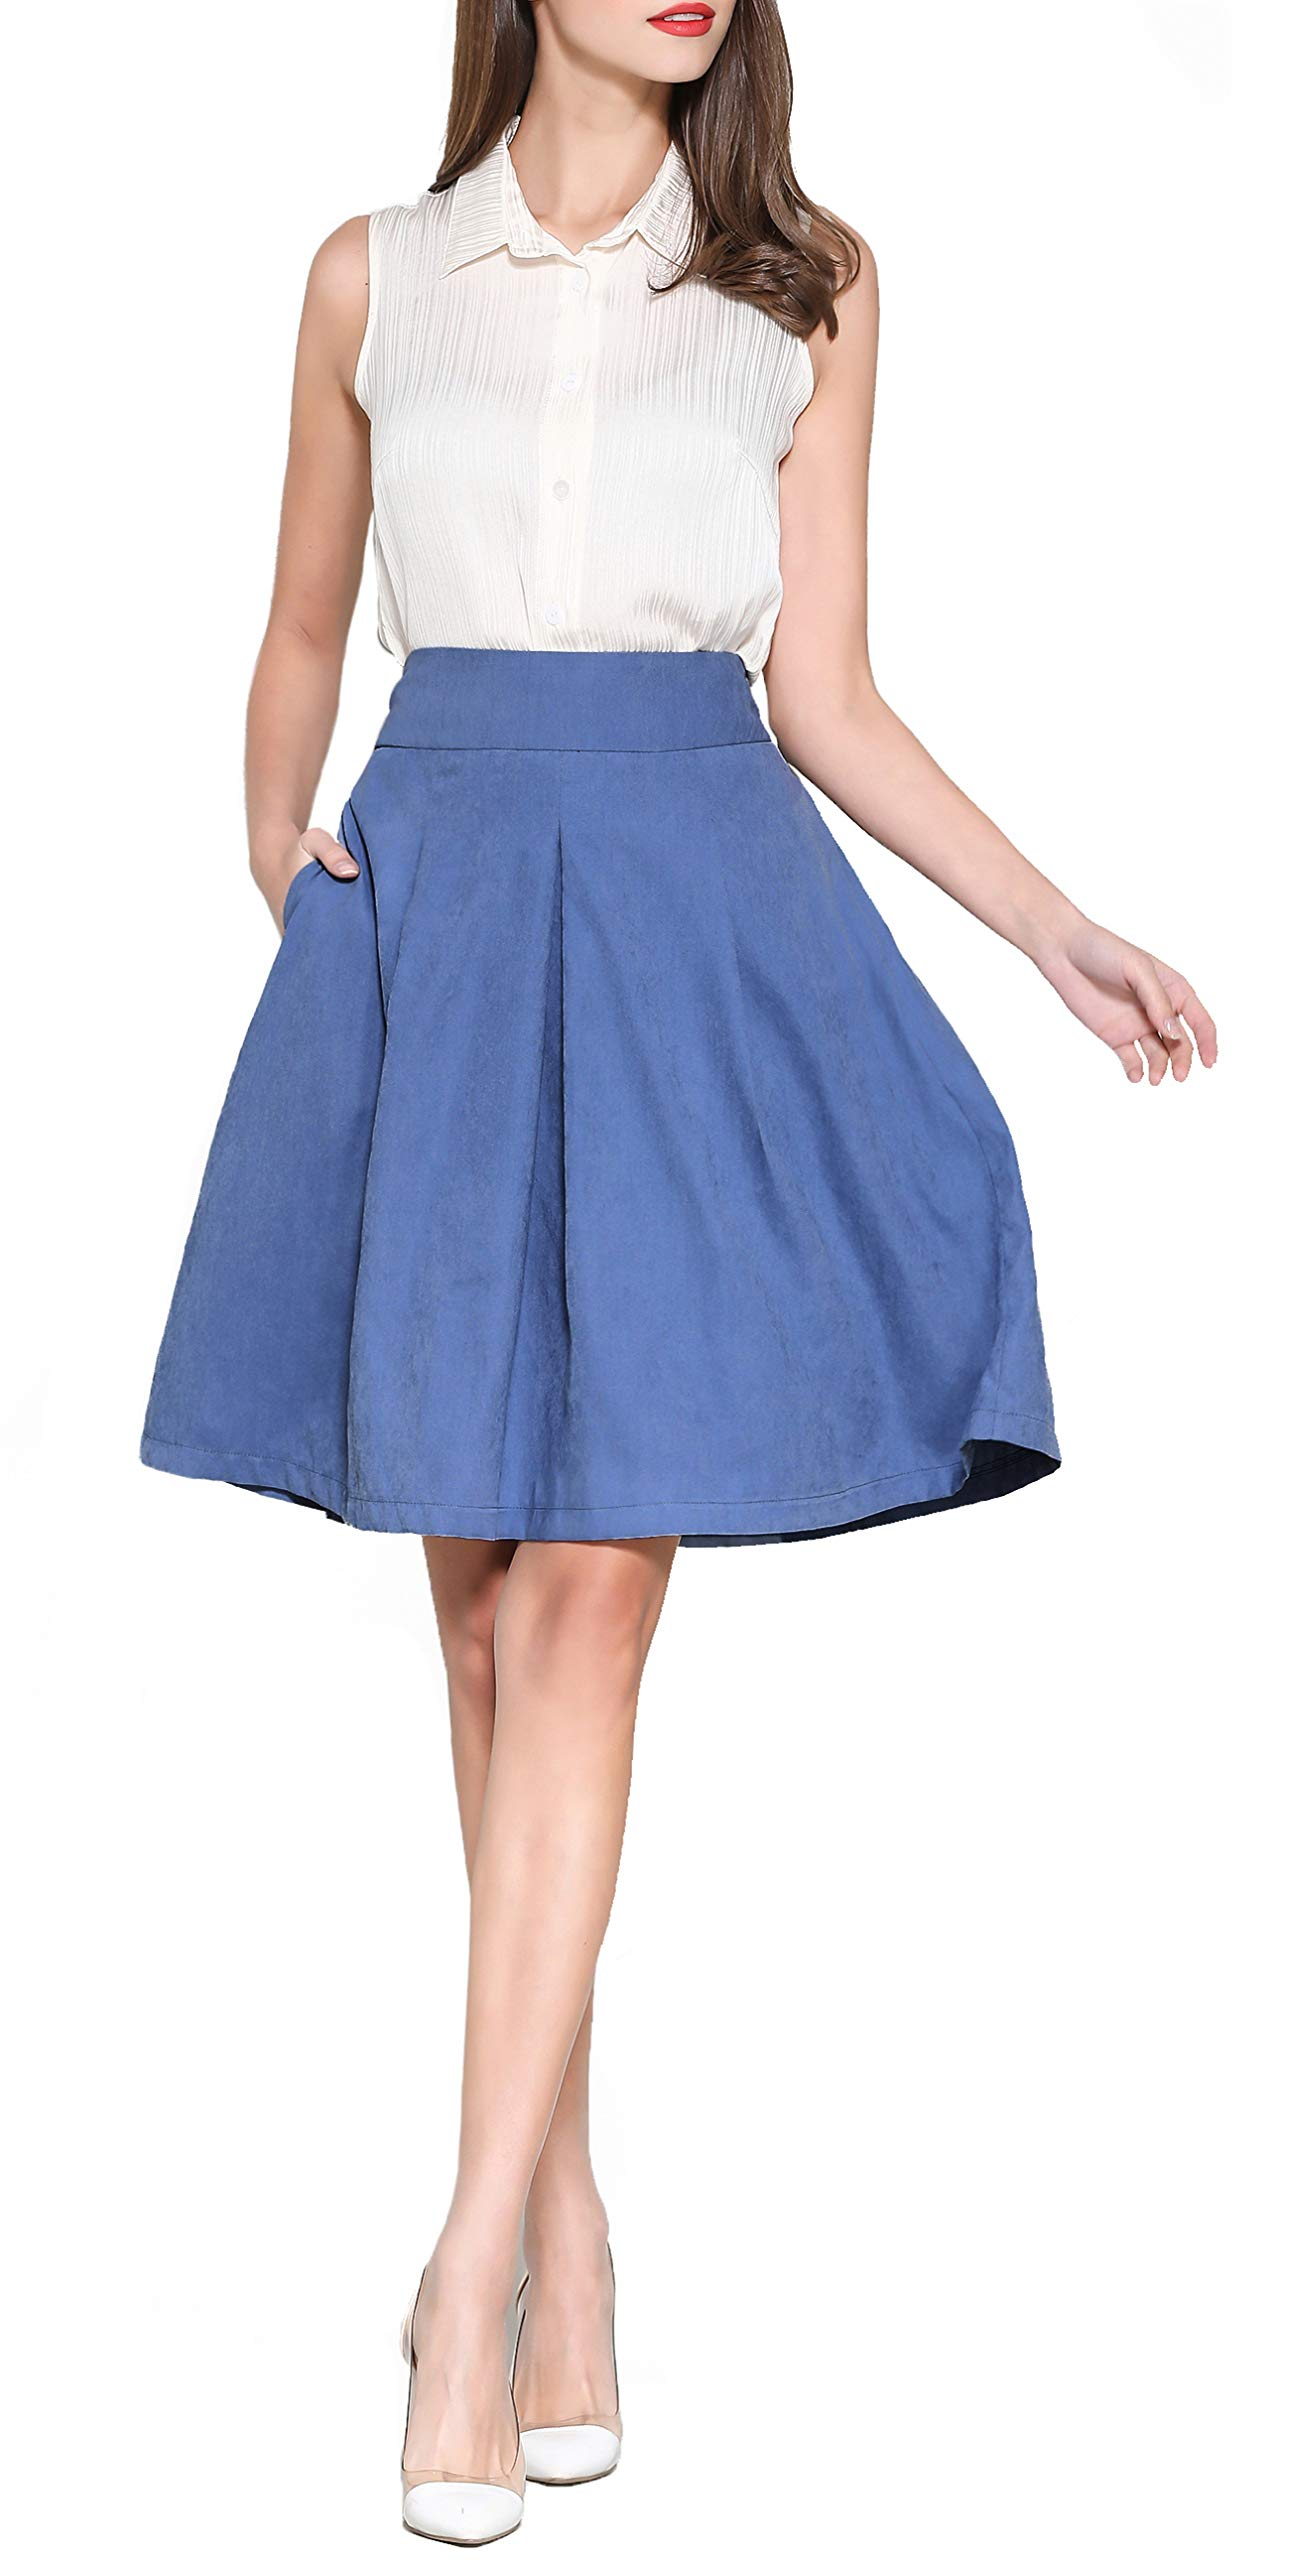 Knee Length Flowing Midi Skirt for Women Work Outfit Aline Skirt with Rubber Band Women's High Waist Pleated Blue Midi Skirt with Pockets Blue M